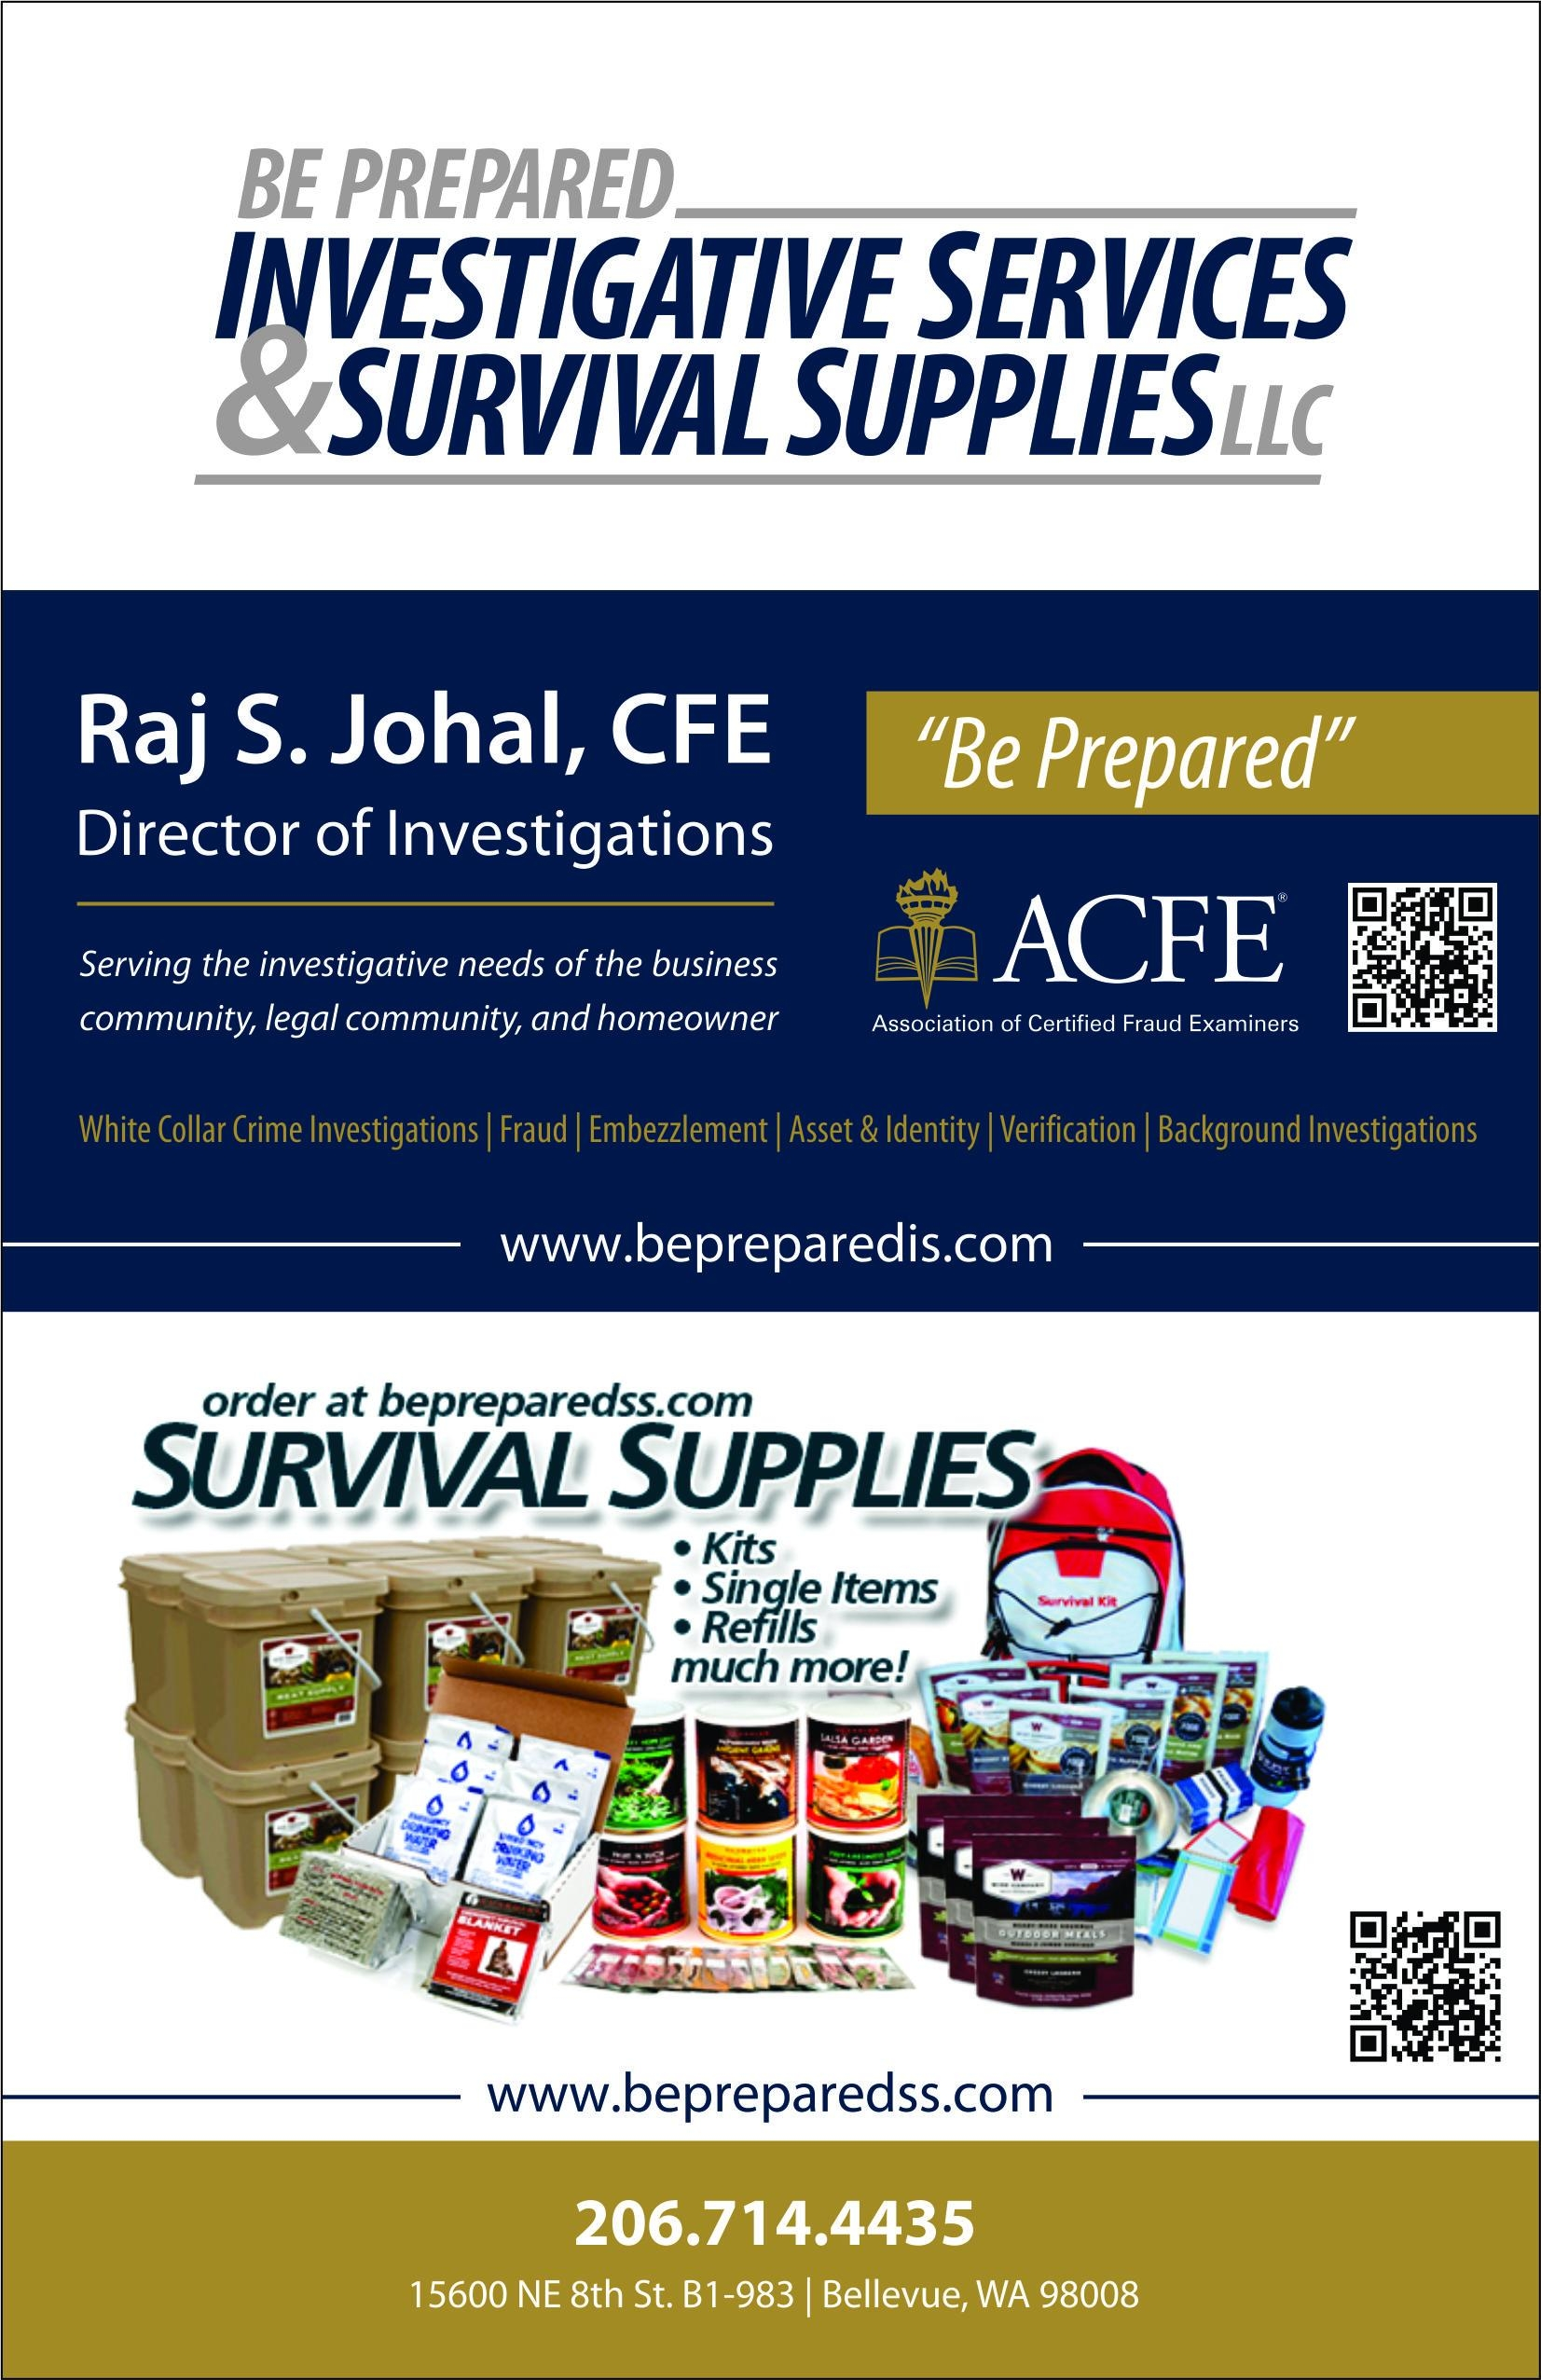 Be Prepared Investigative Services and Survival Supplies LLC